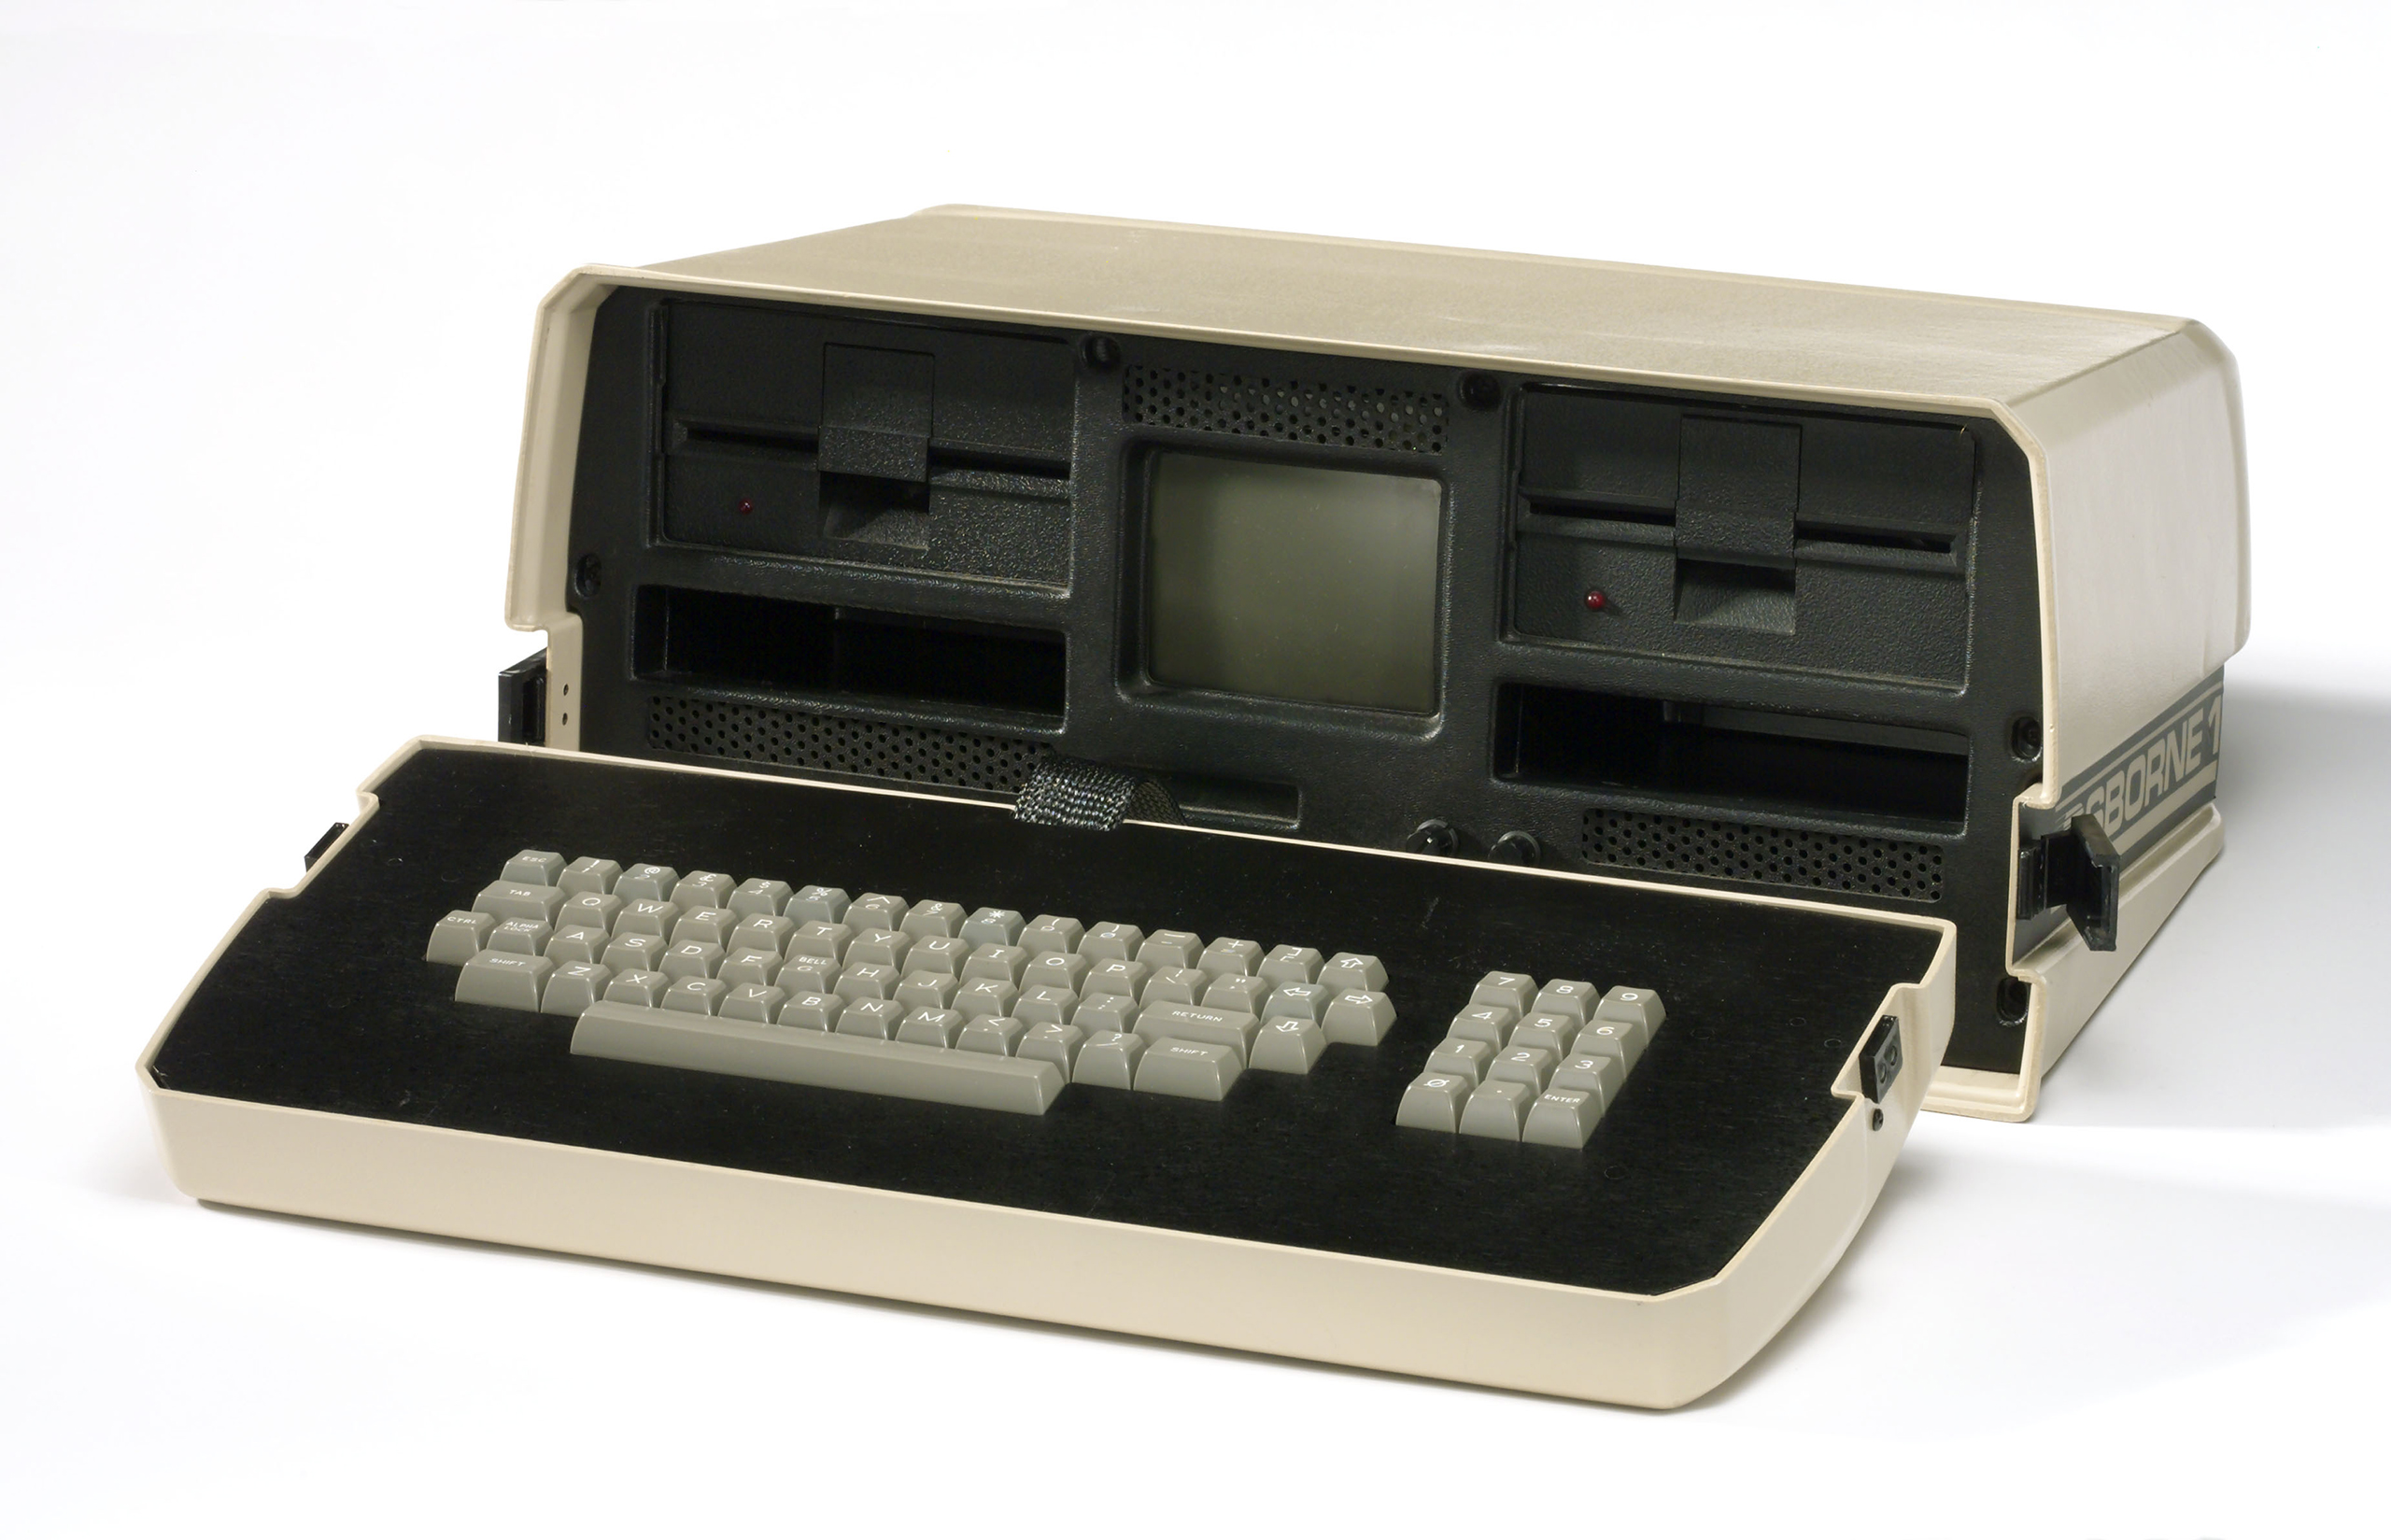 Osborne 1 portable microcomputer, c 1981.